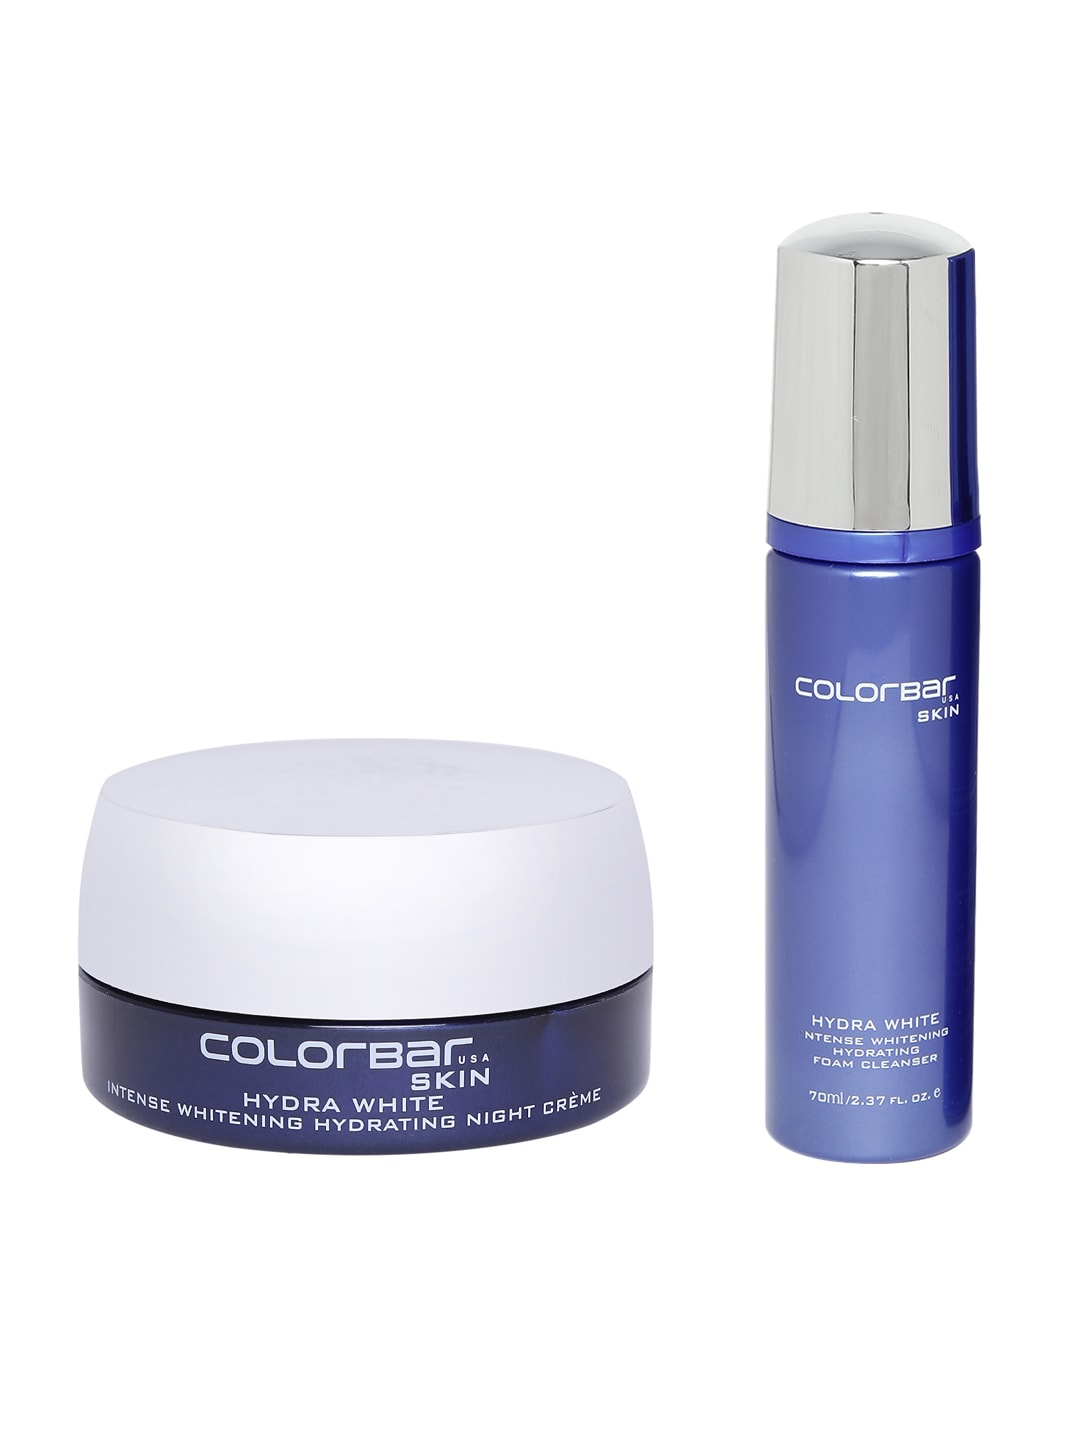 Colorbar Night Cream & Foam Cleanser image.